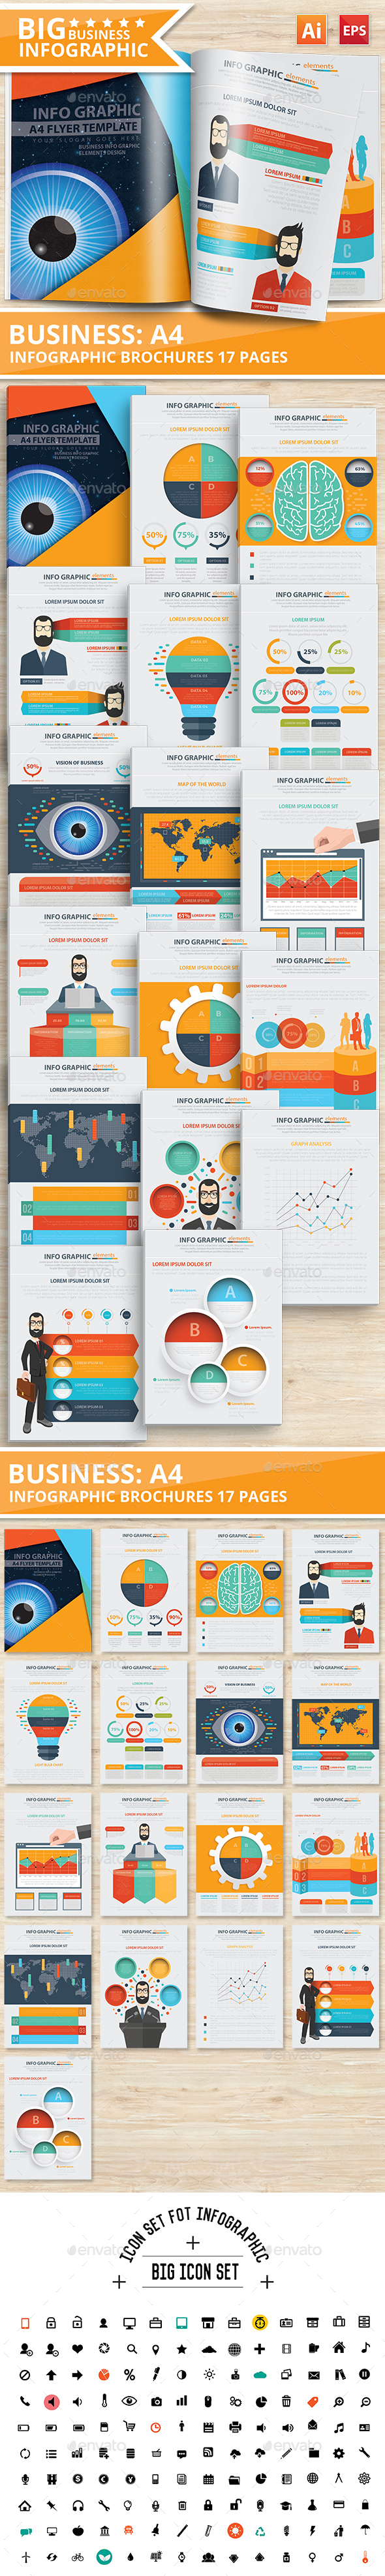 Business Infographics Design 17 Pages - Infographics